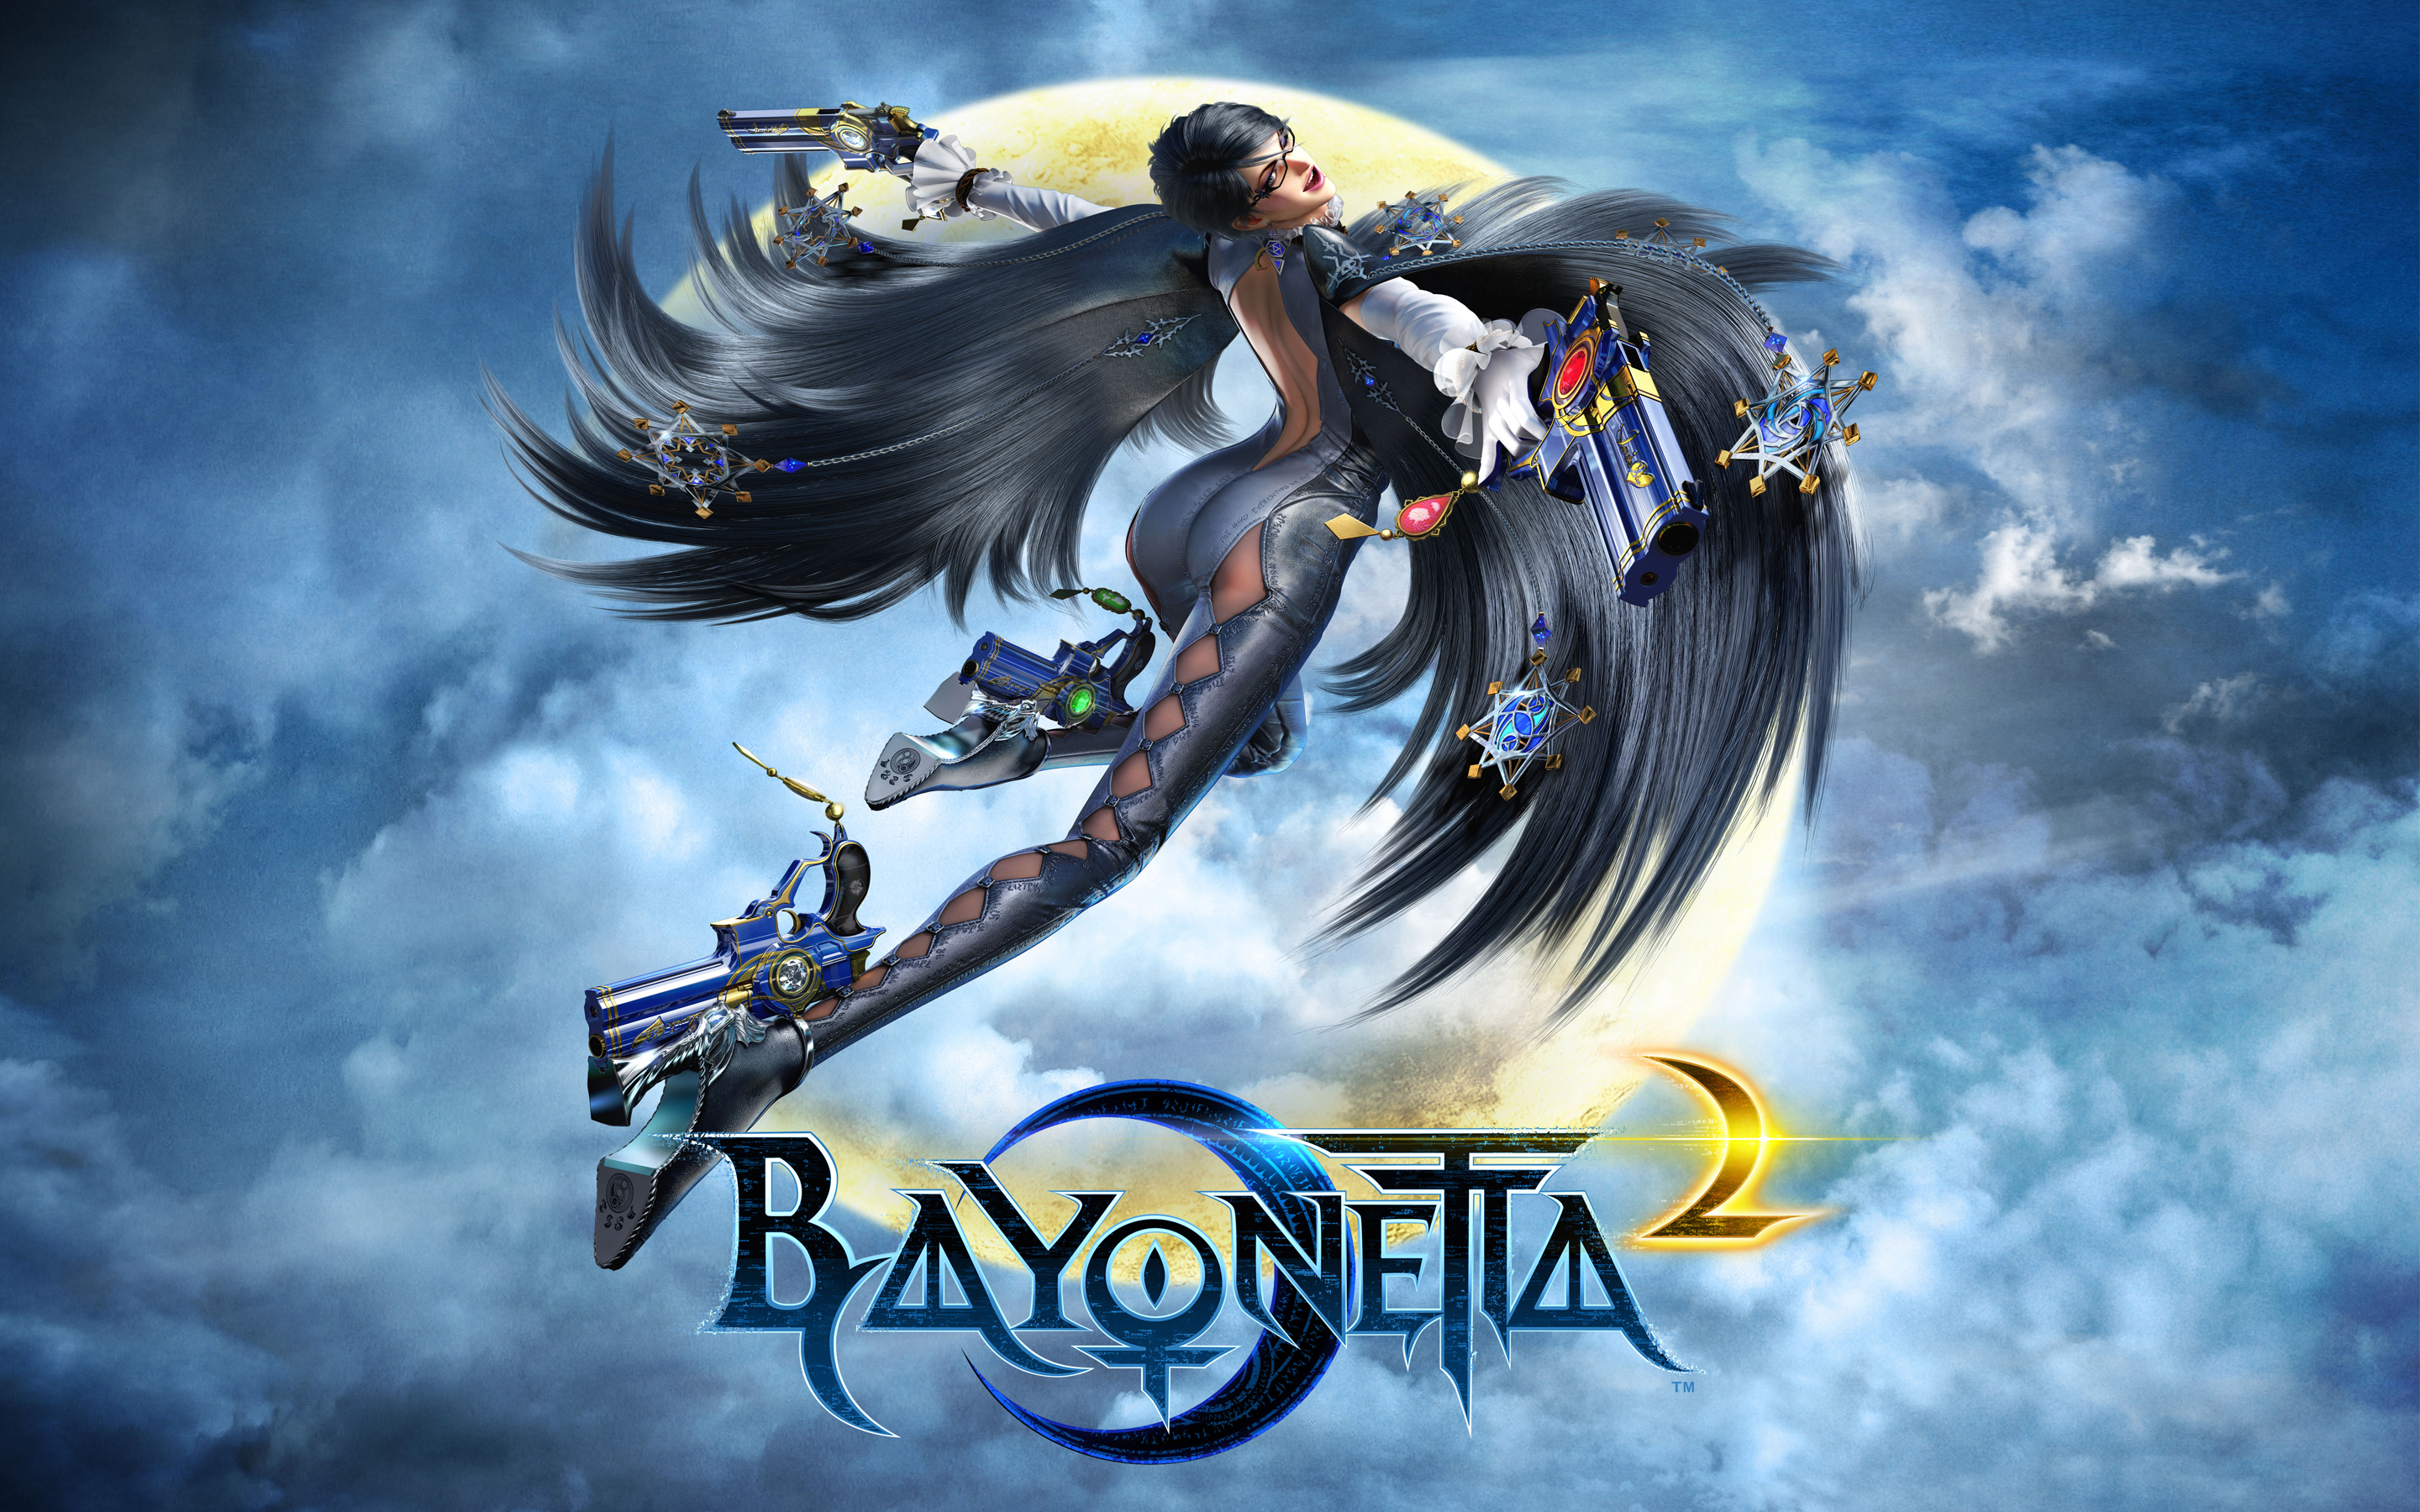 Bayonetta 2 game